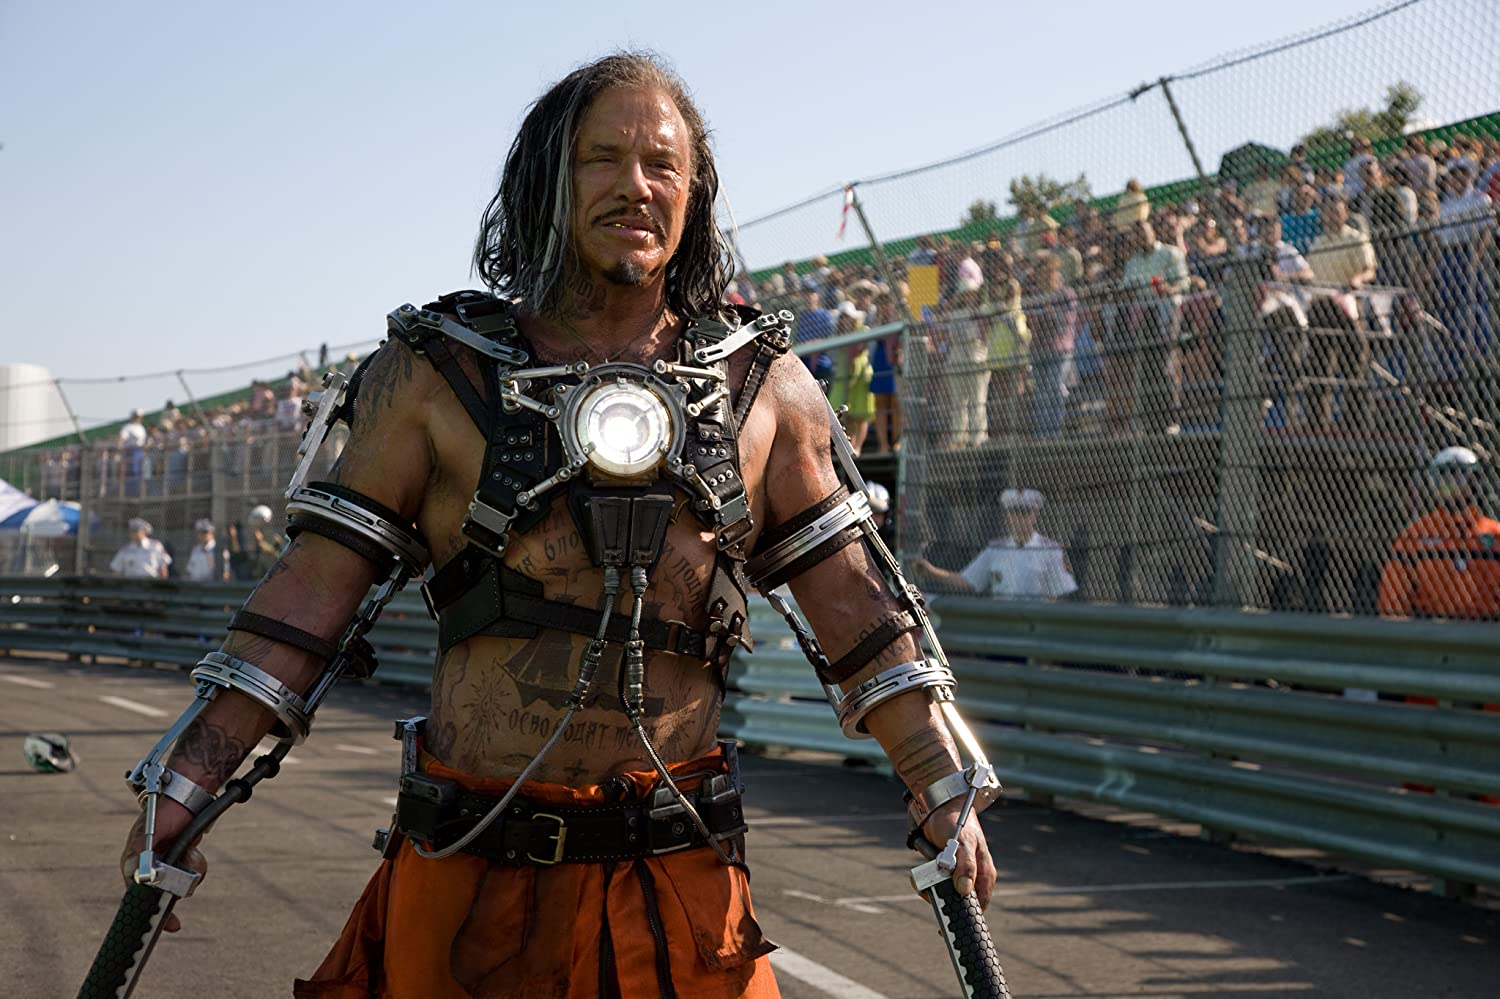 Mickey Rourke in Iron Man 2 (2010)